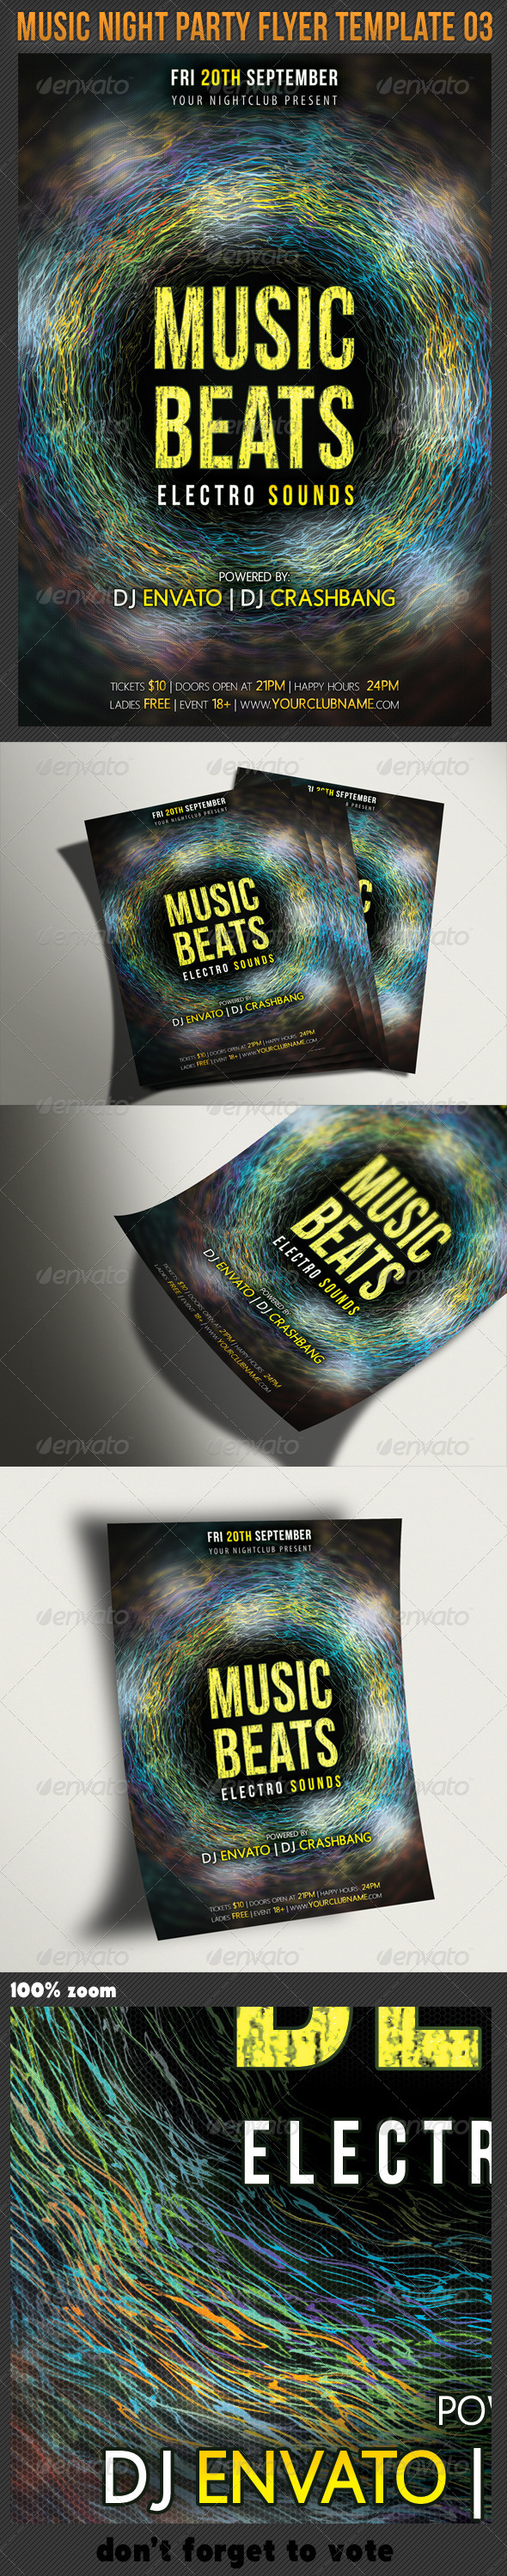 Music Night Party Flyer Template 03 - Clubs & Parties Events